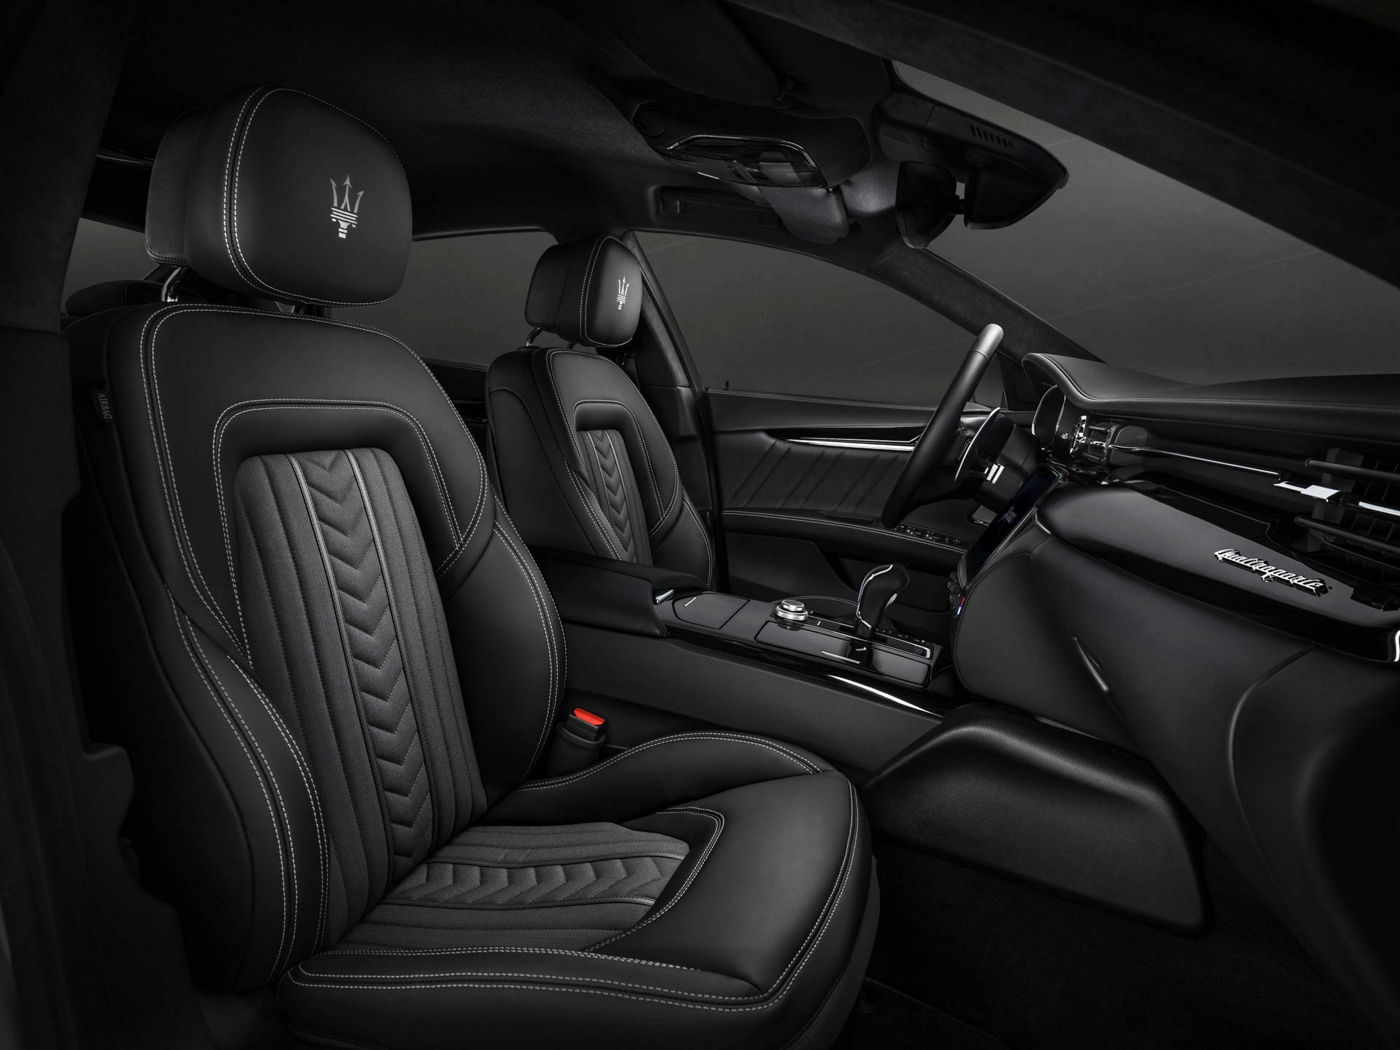 Seats black leather design details - Maserati Quattroporte GranLusso